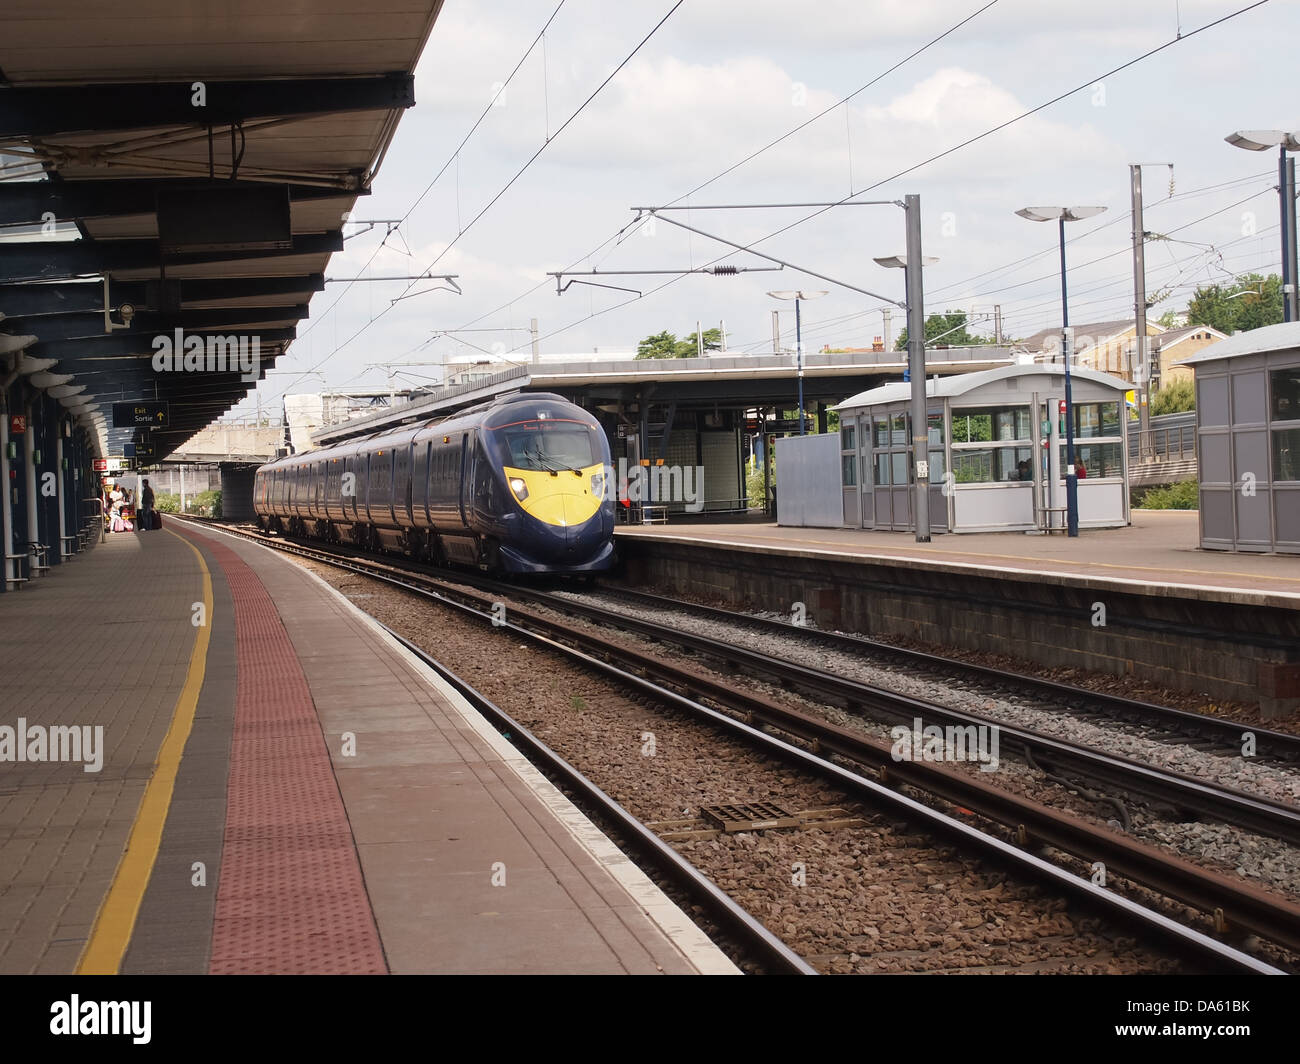 A Hitachi bullet train owned by Southeastern trains on the platform at Ashford International station - Stock Image